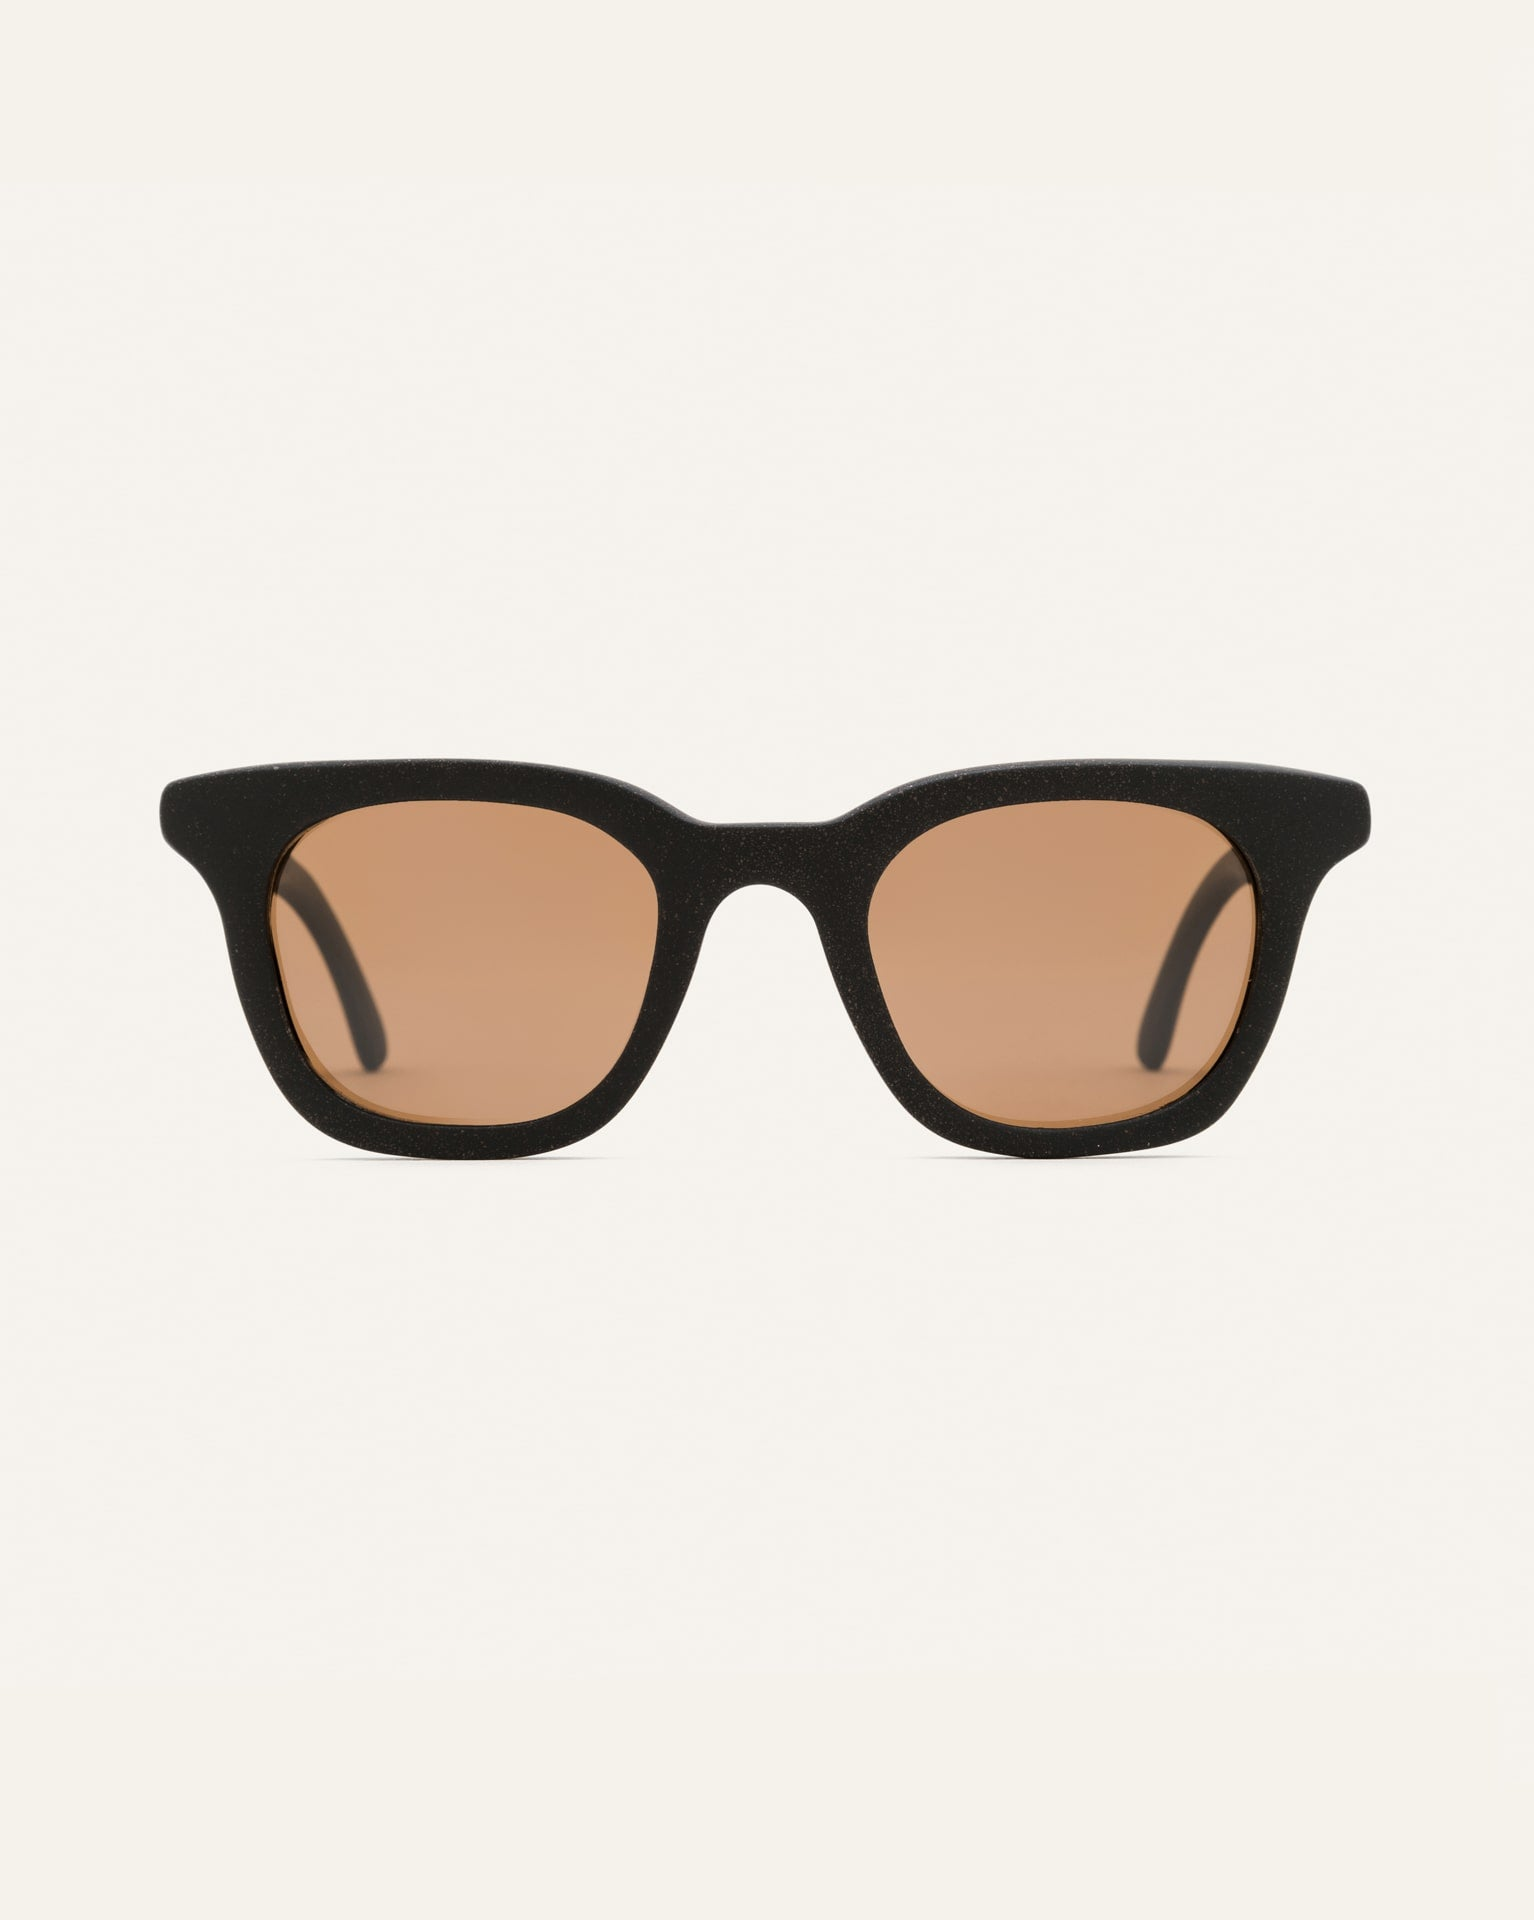 wayfarers glasses